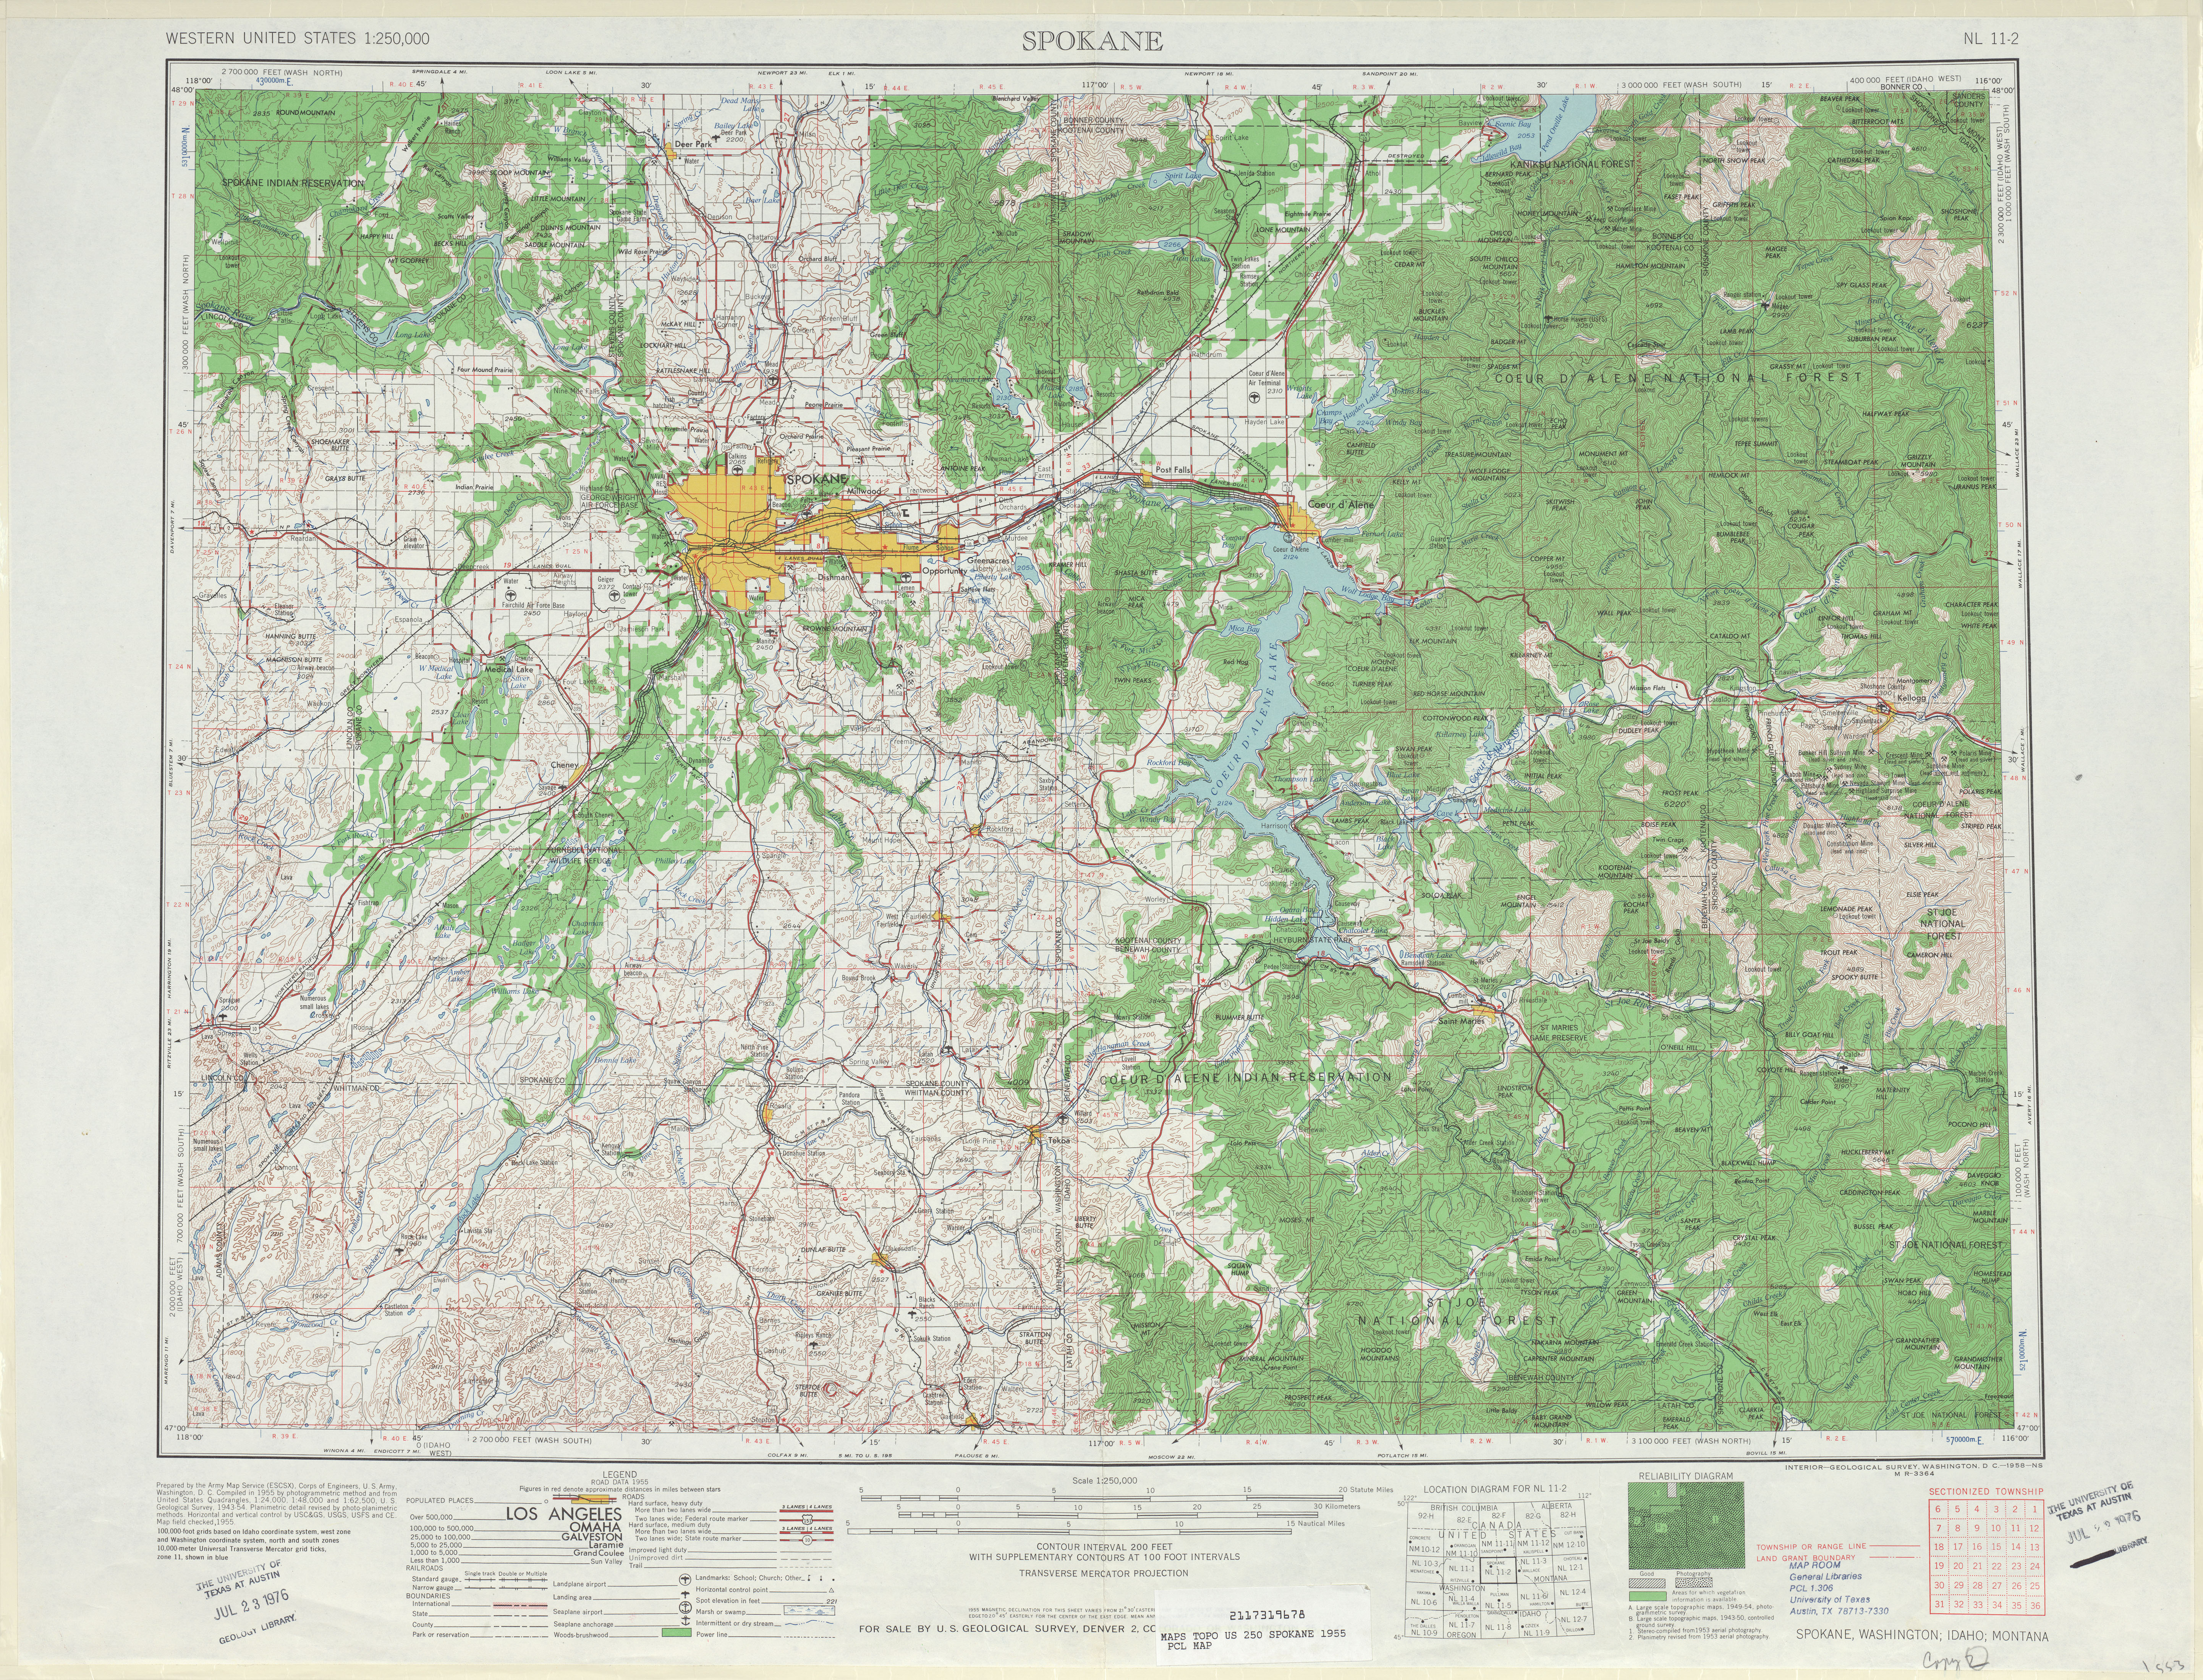 Spokane Topographic Map Sheet, United States 1955